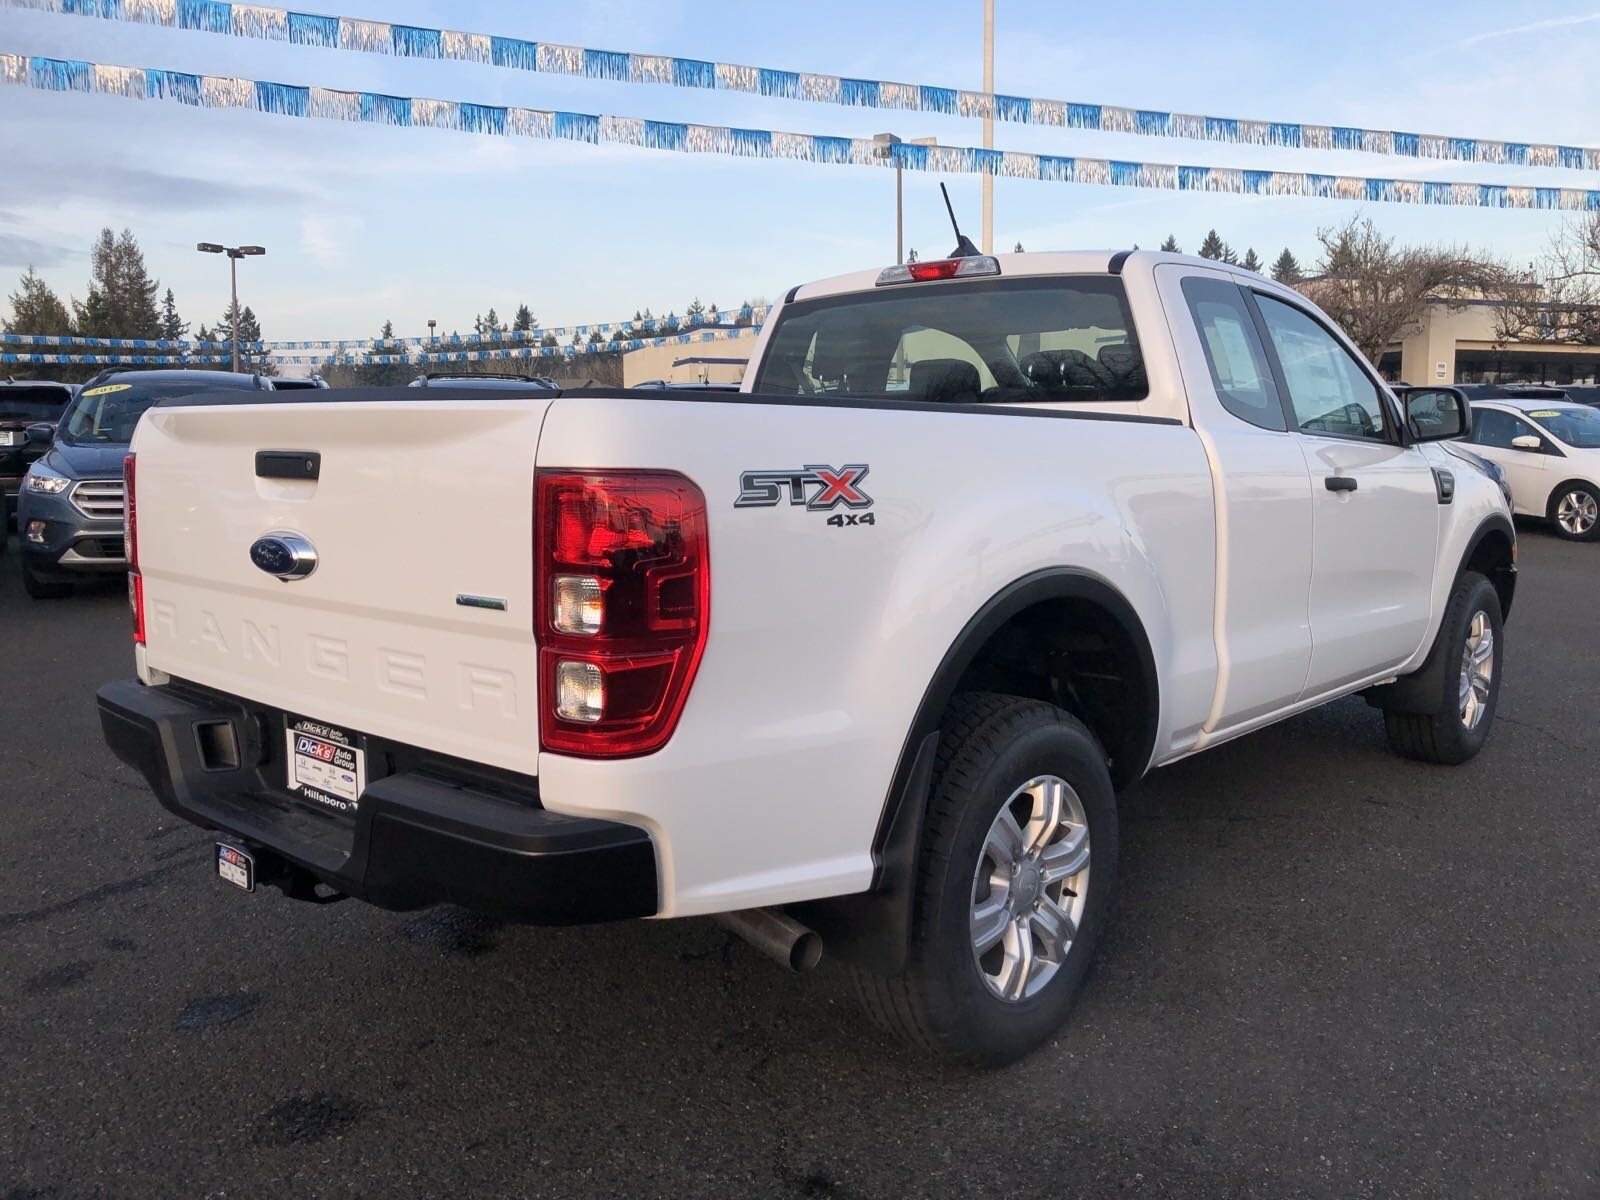 2019 Ranger Super Cab 4x4, Pickup #299938 - photo 1